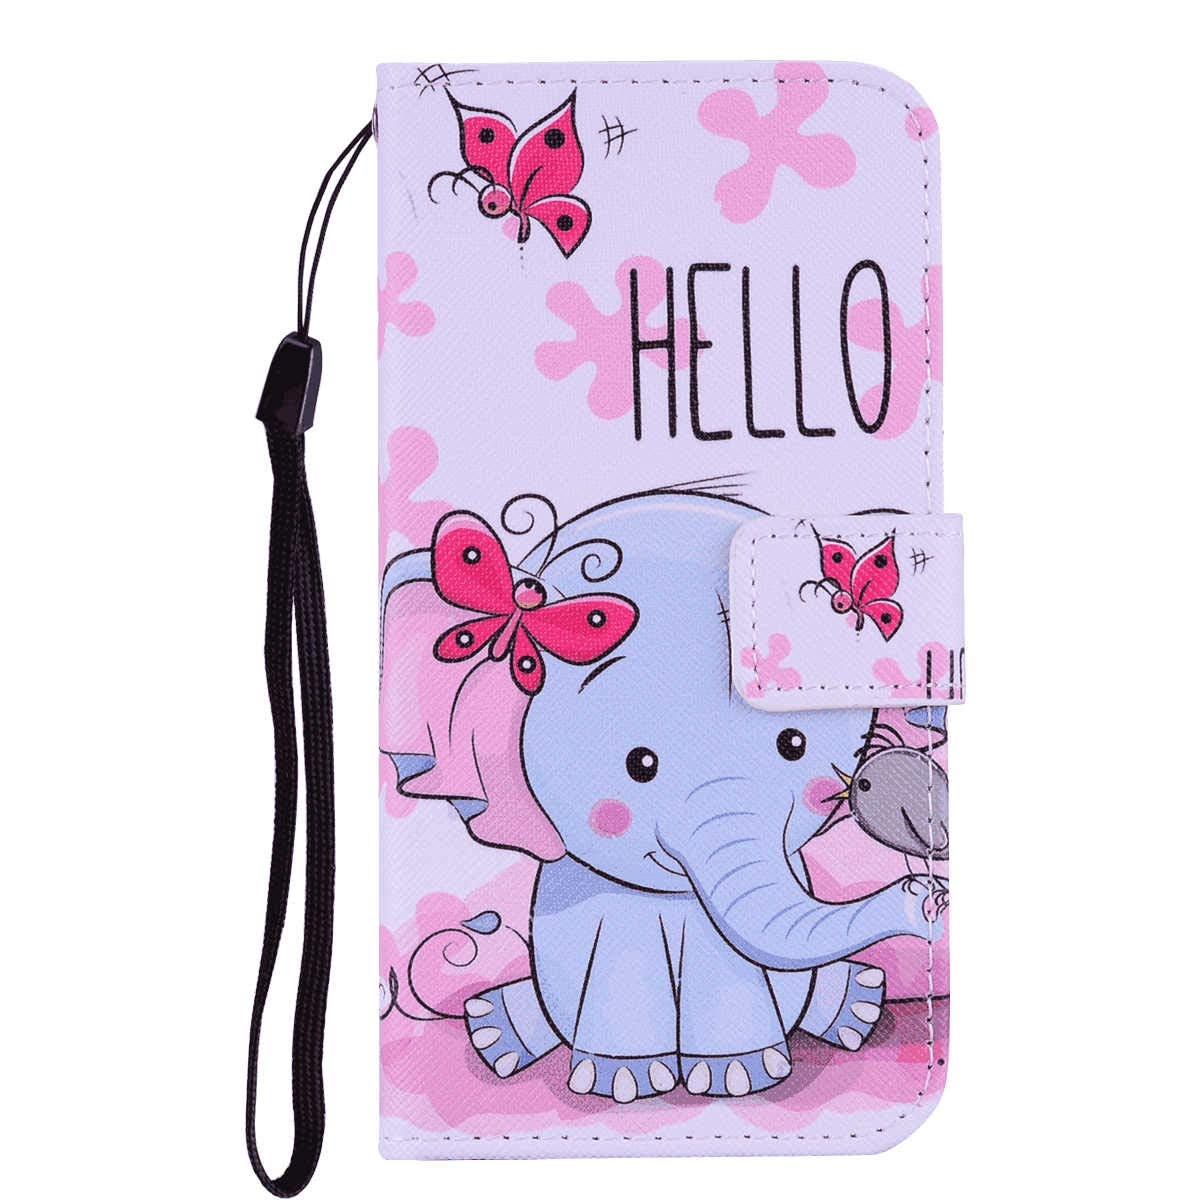 Leather Cover Compatible with iPhone 11 Pro Max, Elephant Wallet Case for iPhone 11 Pro Max